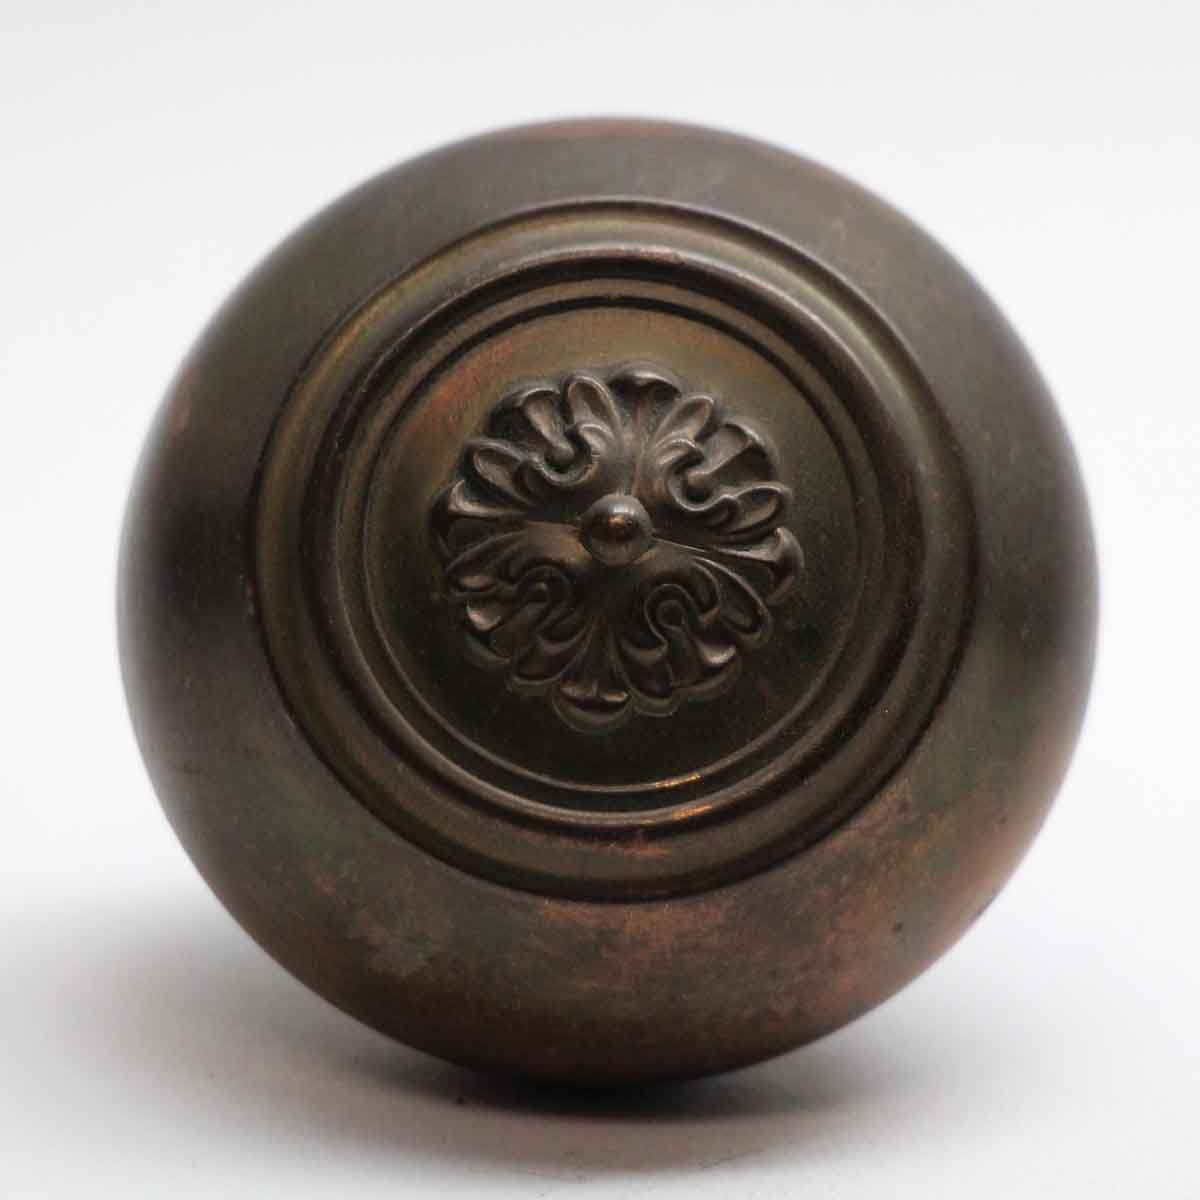 Antique Russell & Erwin Brass Floral Door Knob | Olde Good Things